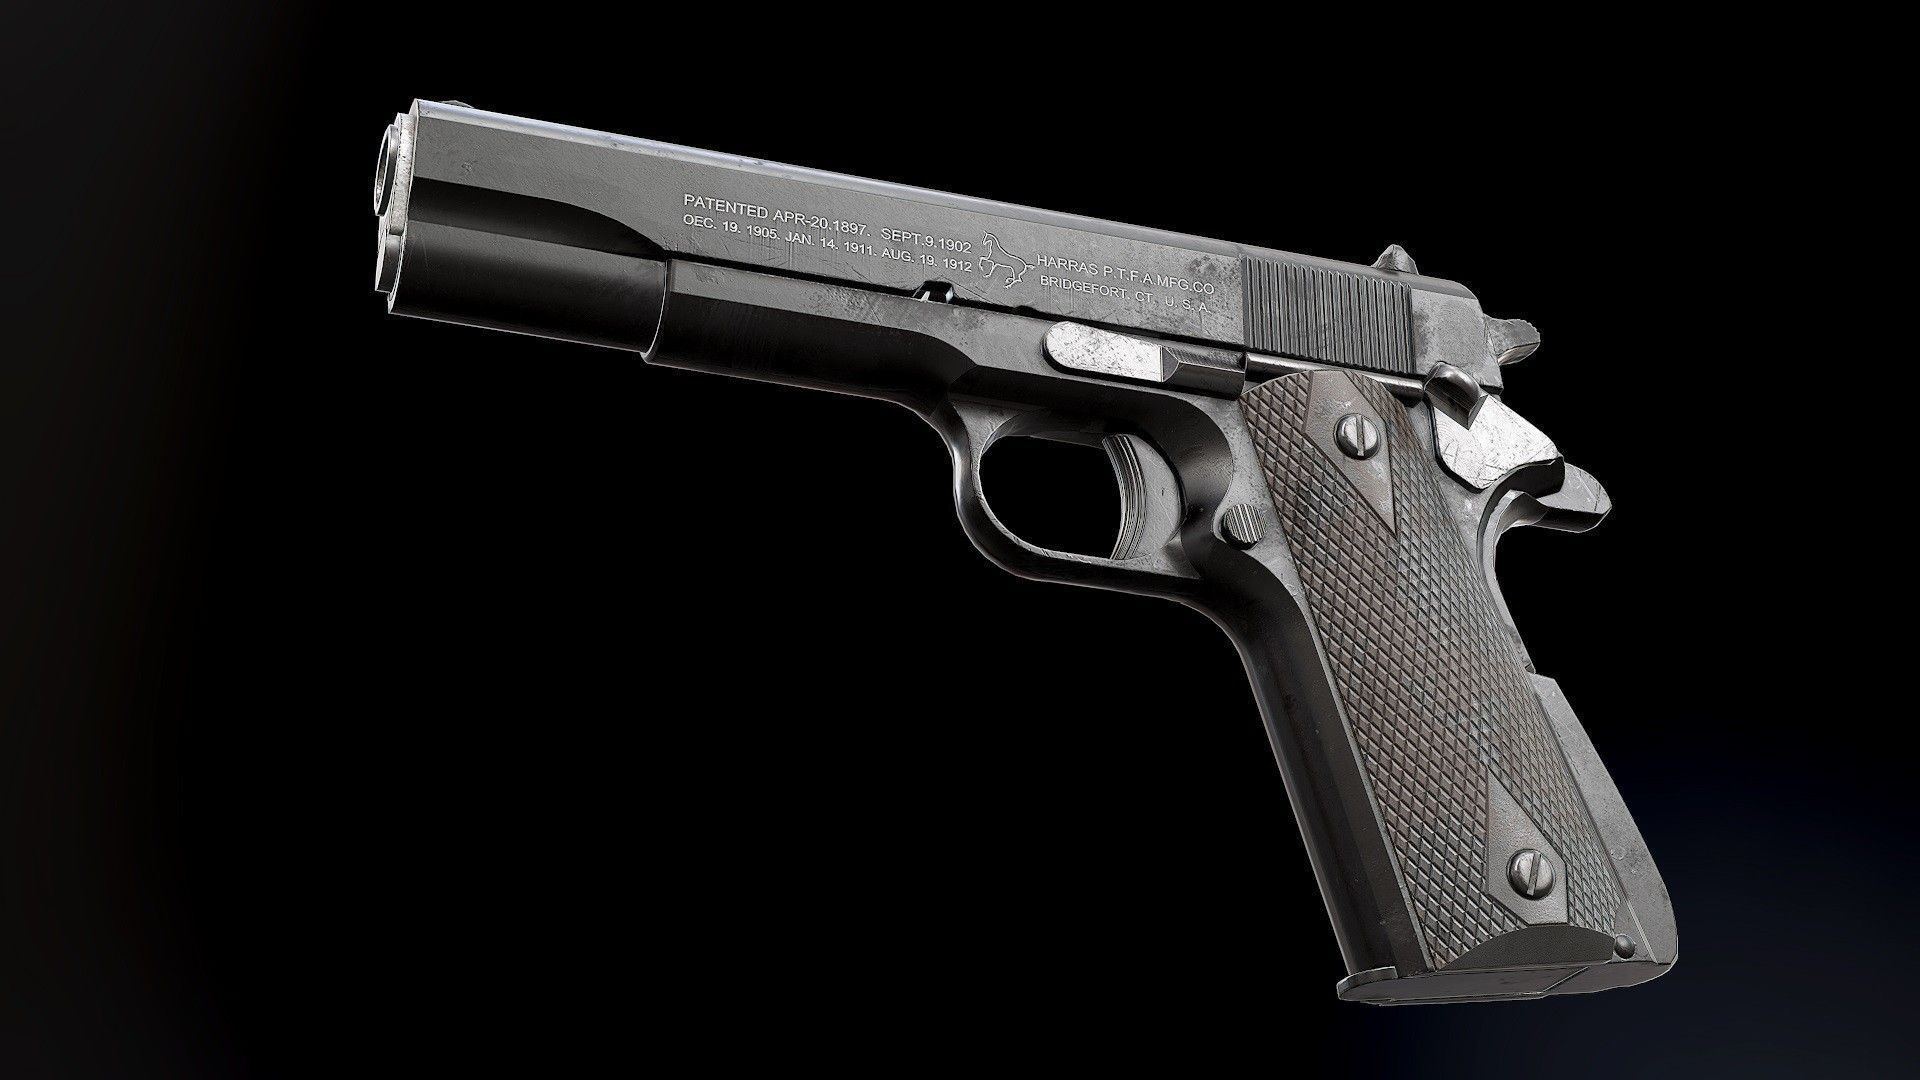 Colt 1911 Black and Chrome - Model and Textures